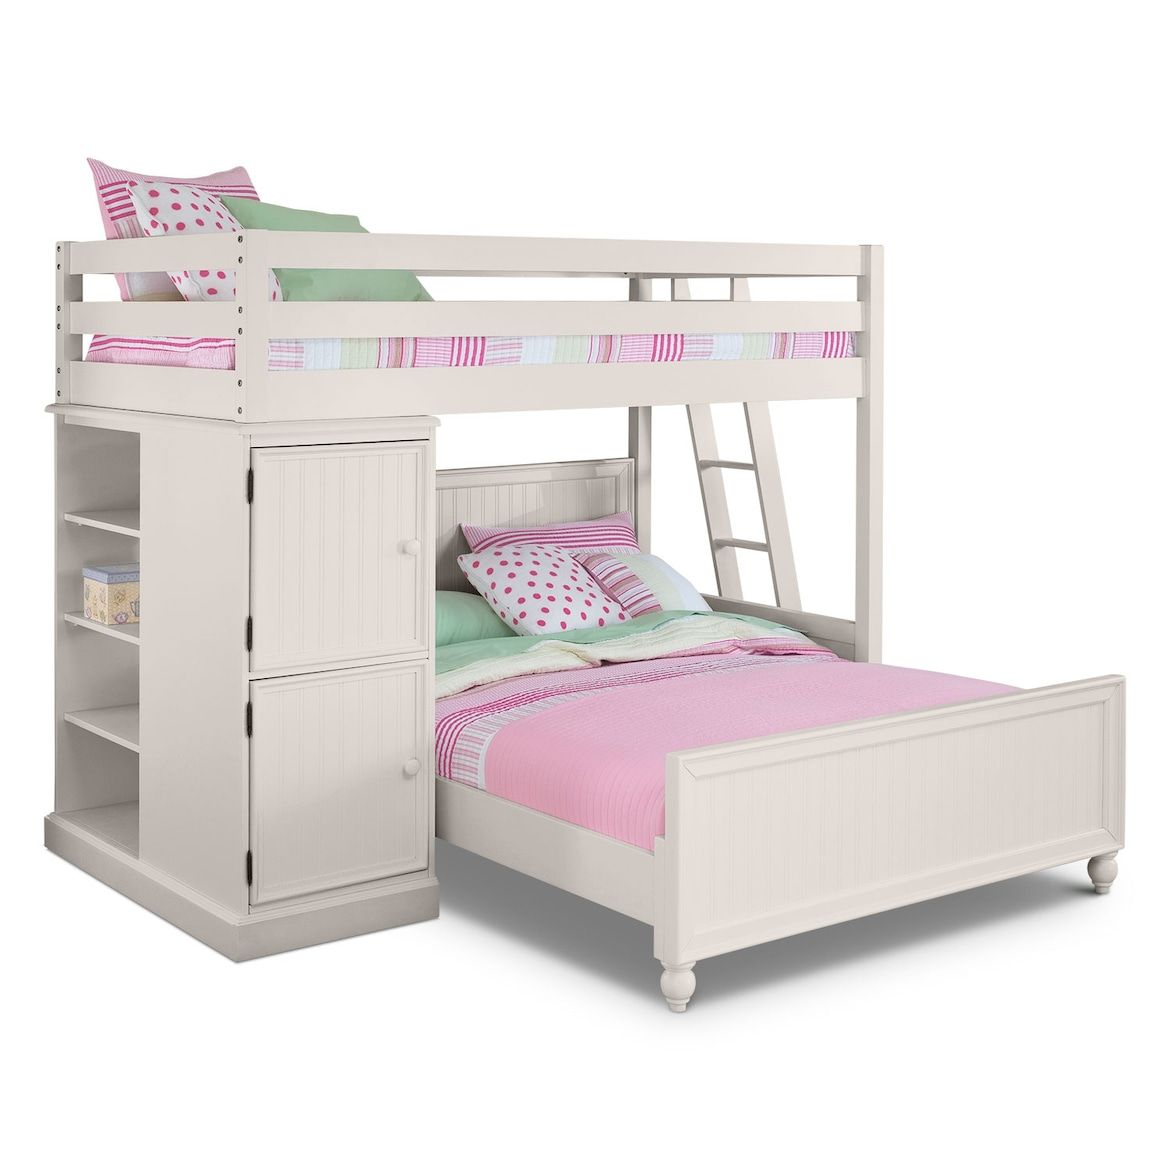 Colorworks Loft Bed With Bottom Bed Value City Furniture And Mattresses Loft Bed Value City Furniture White Loft Bed